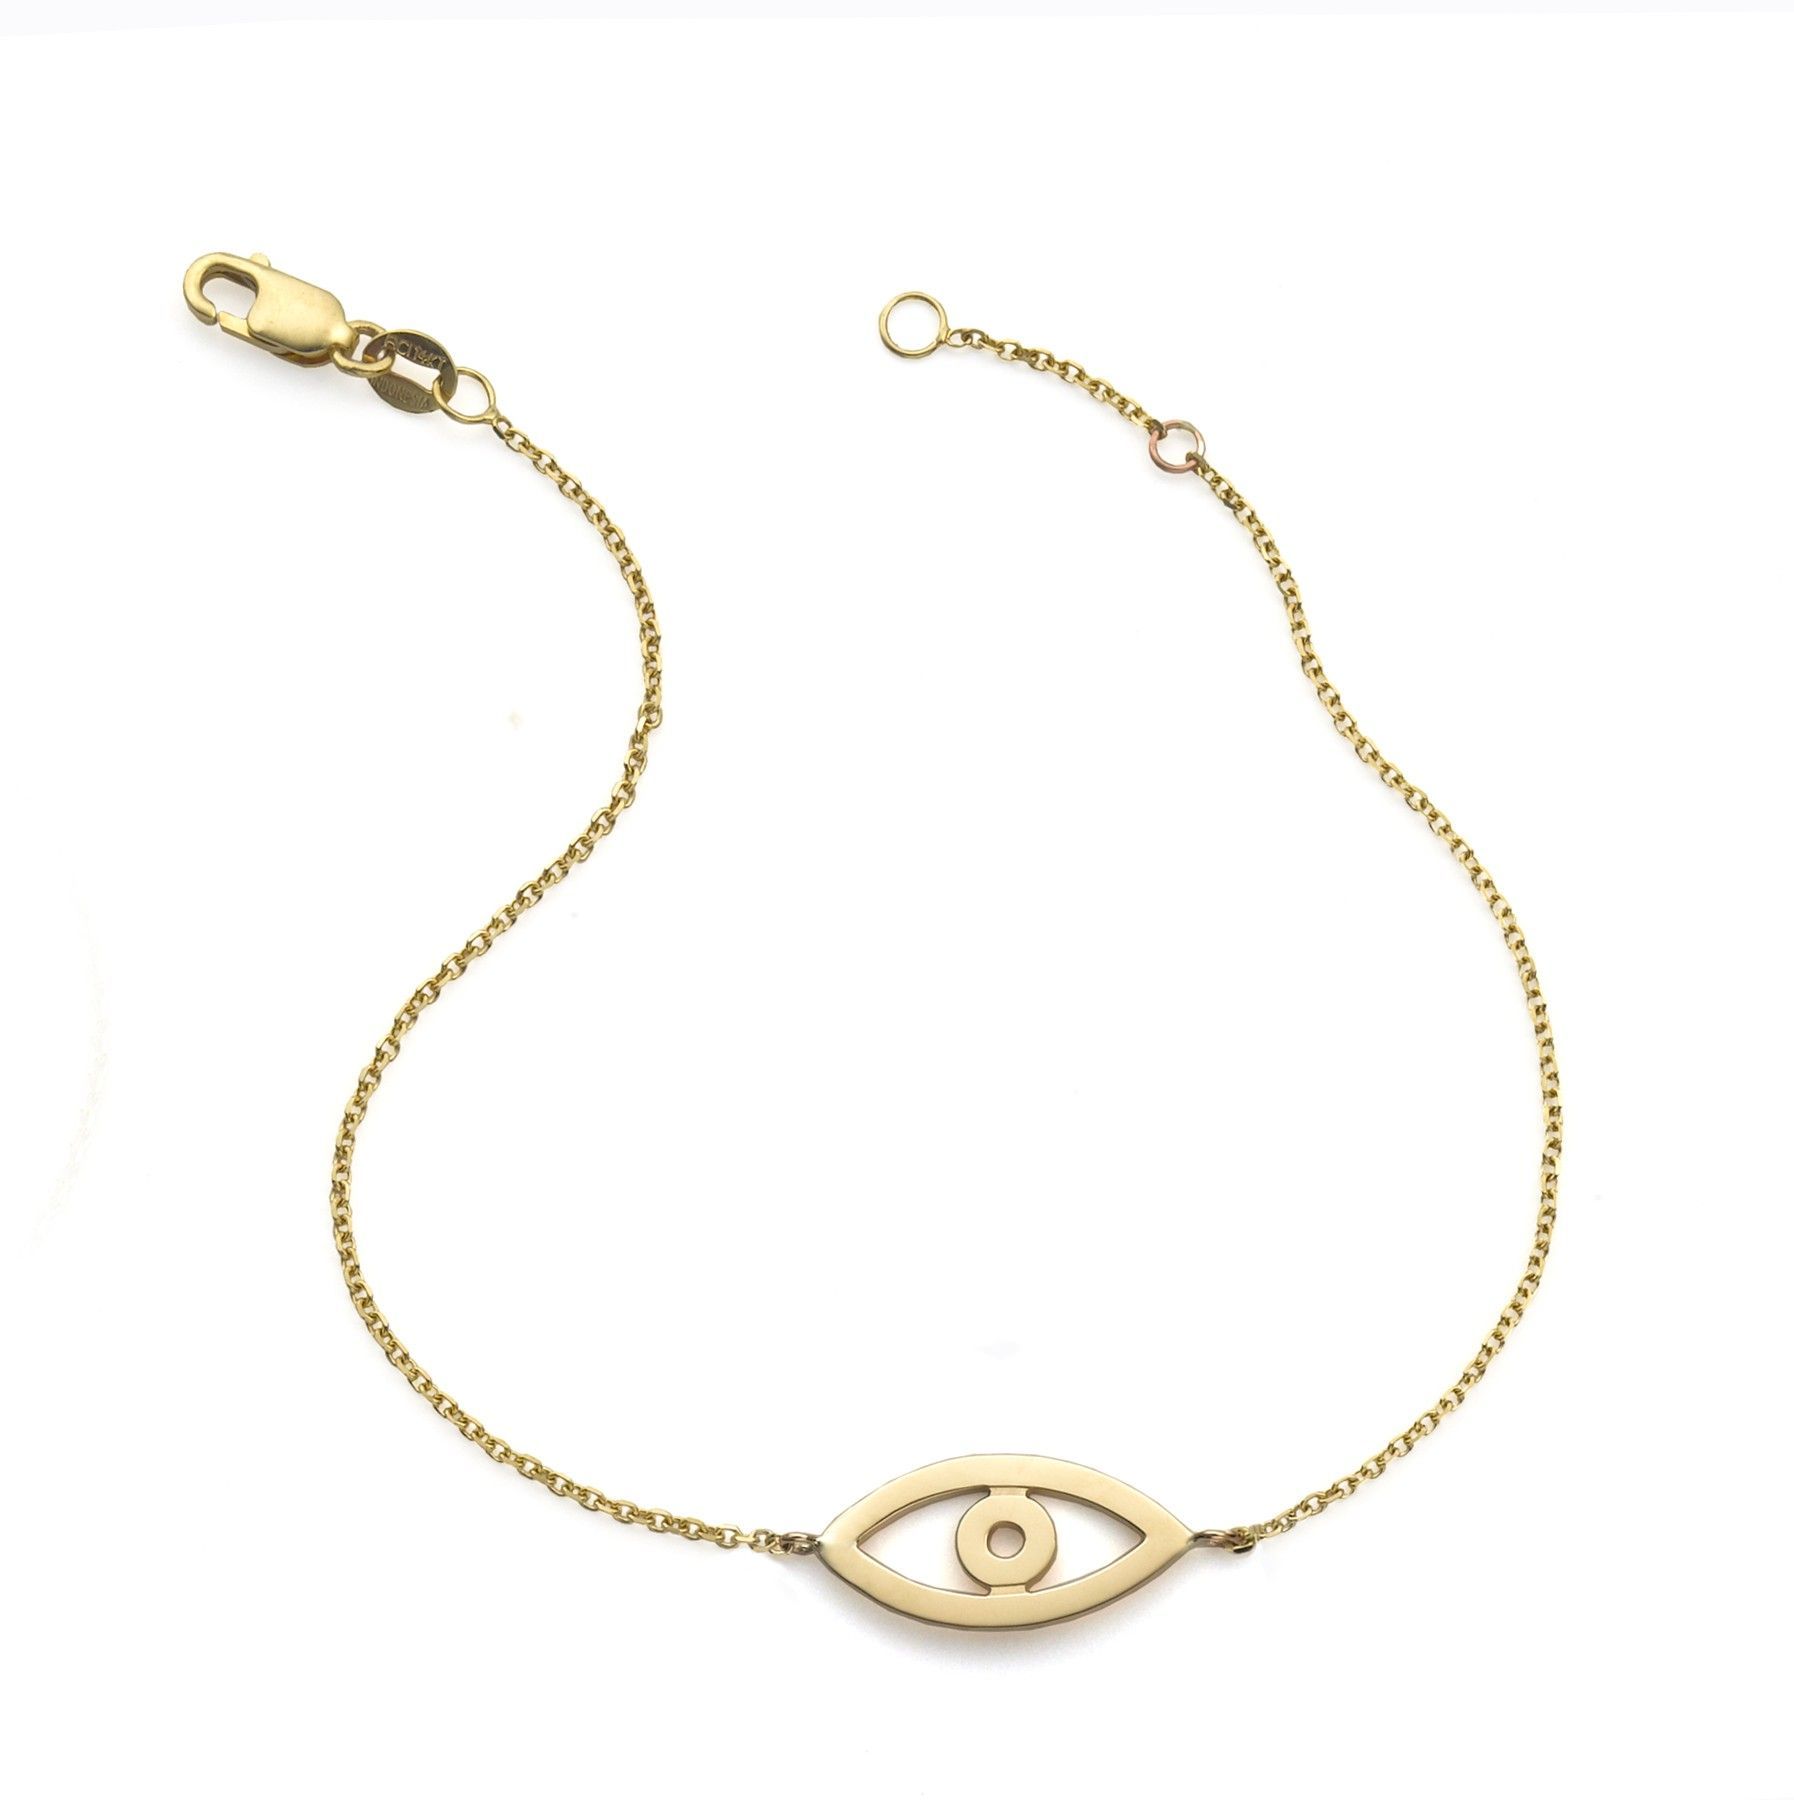 14kt Gold Evil Eye Bracelet Bracelets By Category Sarah Chloe